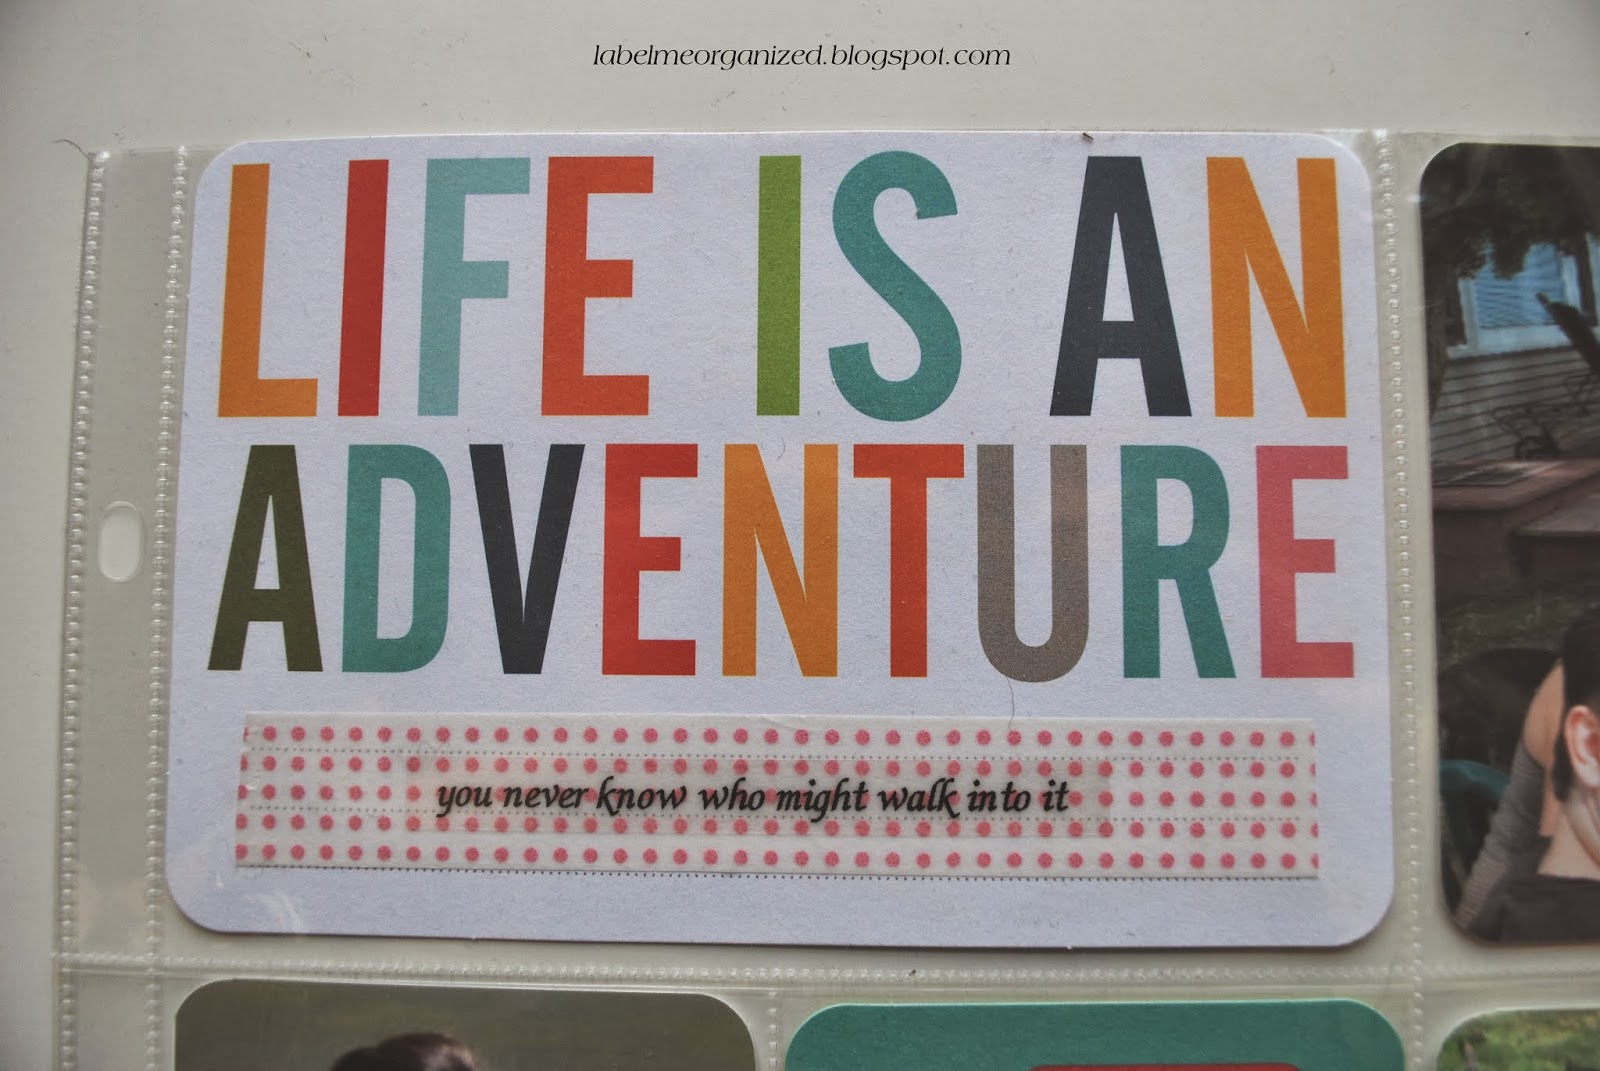 Life is an adventure, you never know who might walk into it